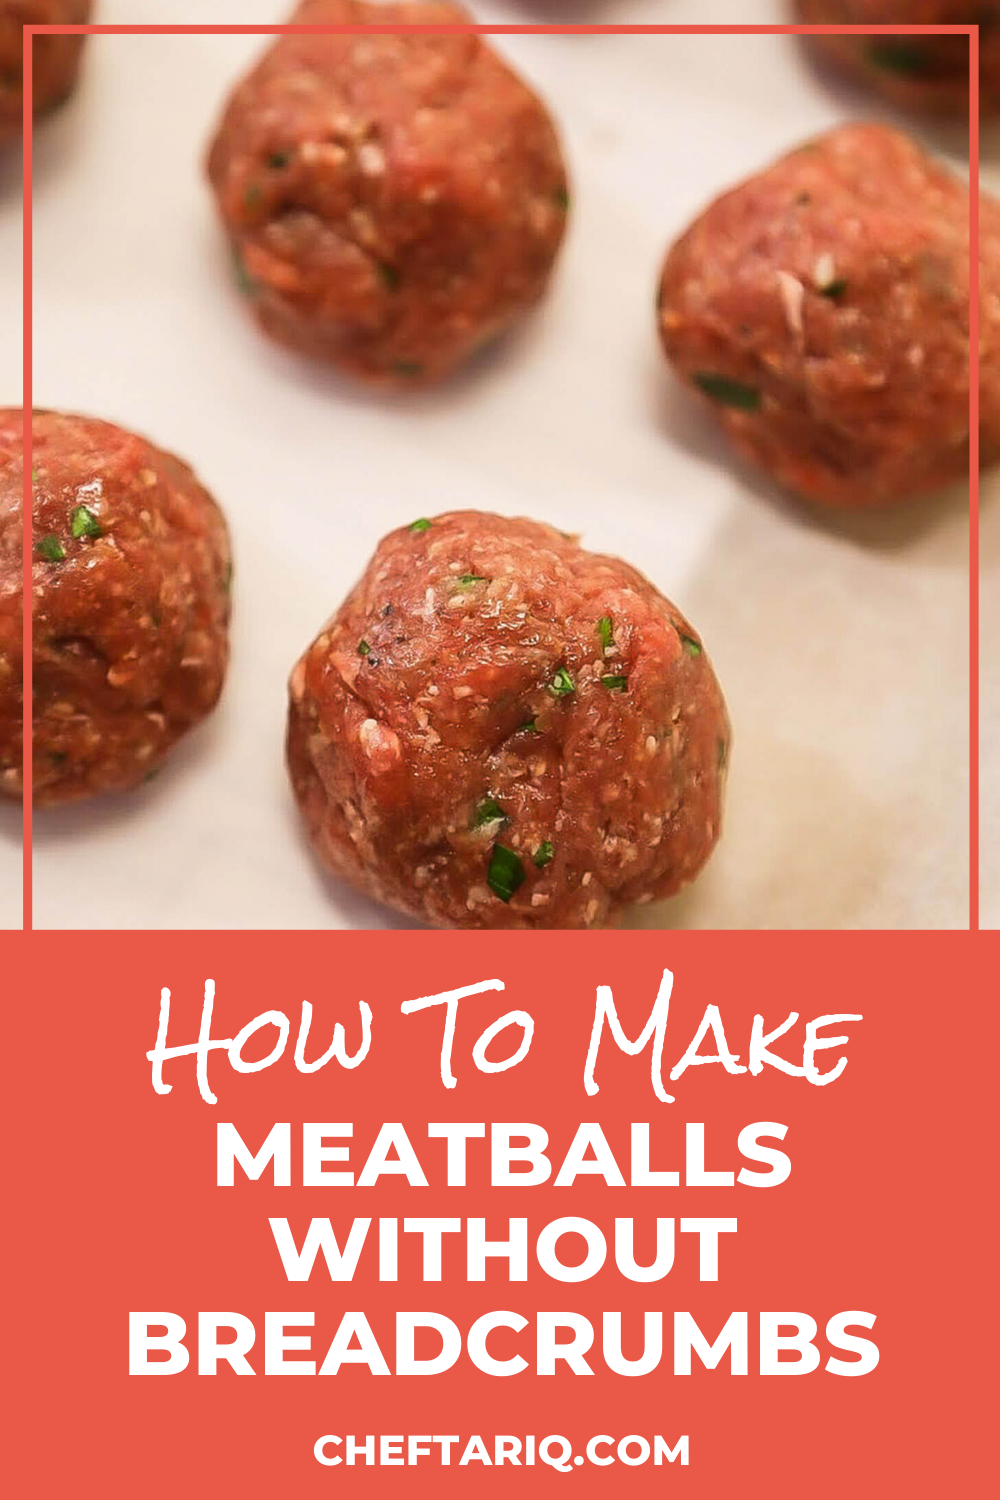 How To Make Meatballs Without Breadcrumbs Gluten Free Chef Tariq Recipe How To Make Meatballs Meatball Recipes Easy Meatballs